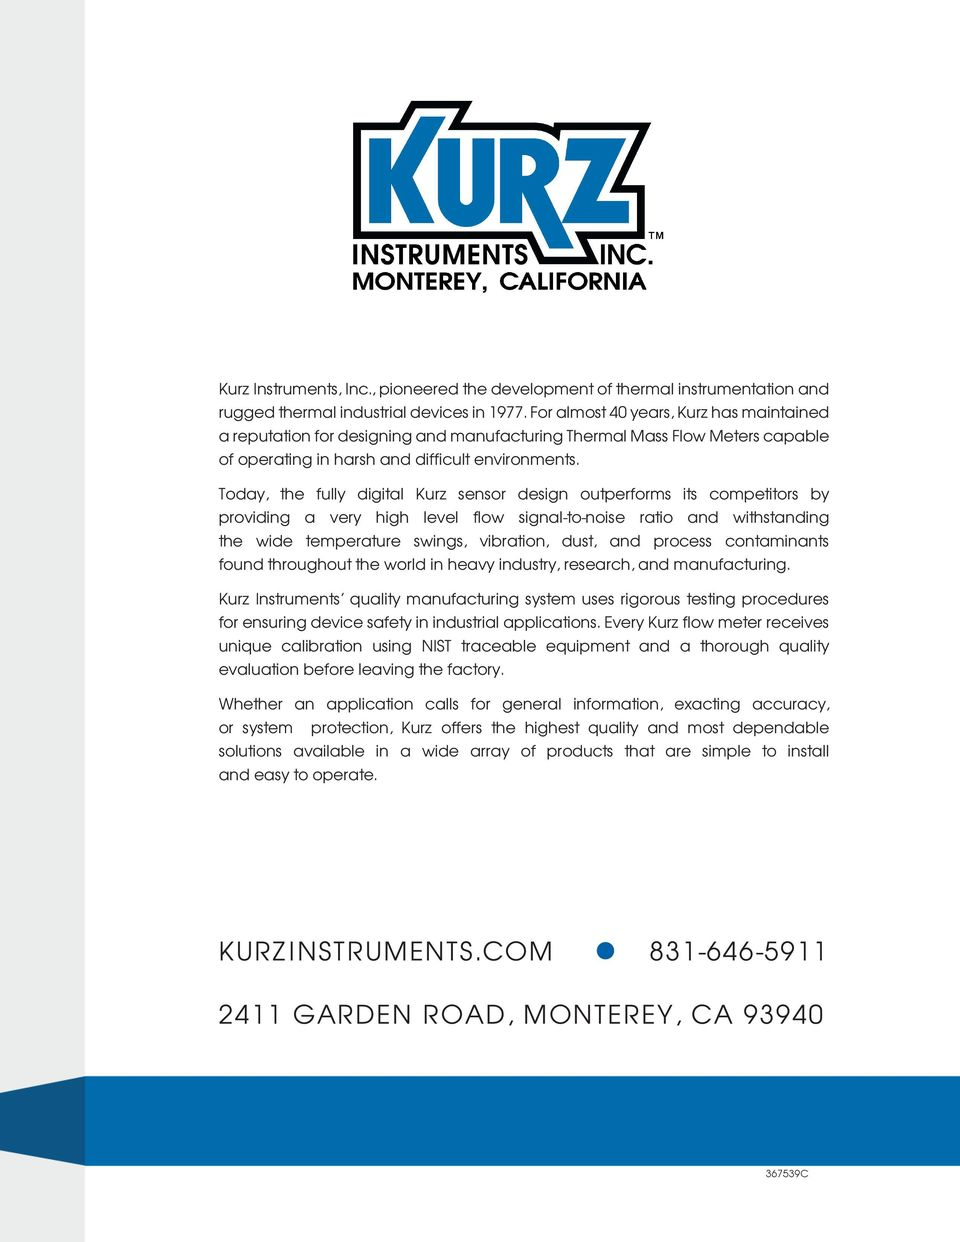 Today, the fully digital Kurz sensor design outperforms its competitors by providing a very high level flow signal-to-noise ratio and withstanding the wide temperature swings, vibration, dust, and